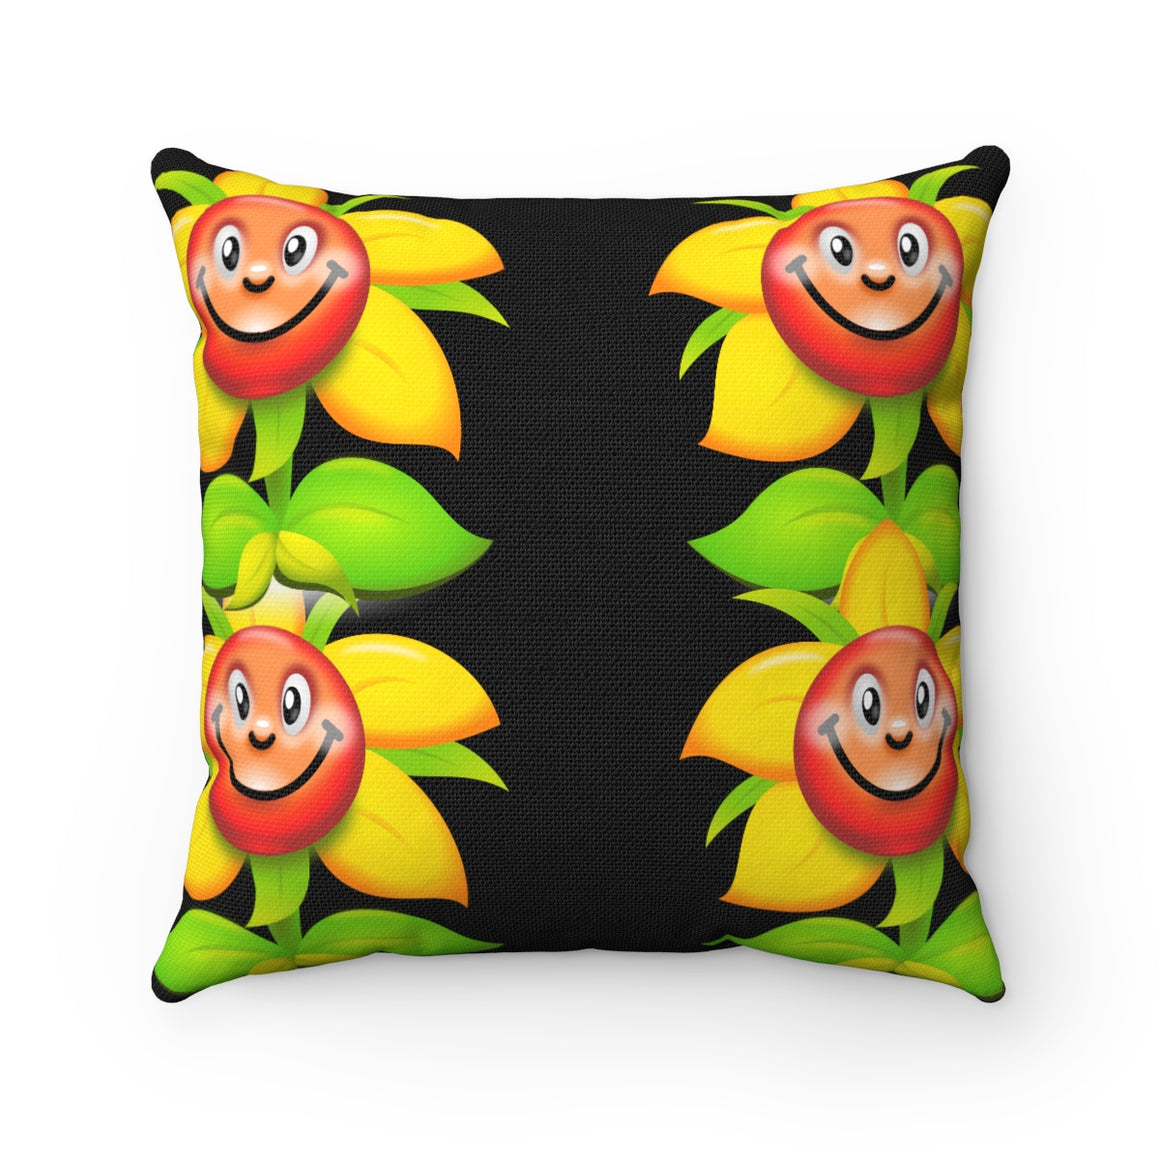 My Fabulous Style Beautiful Kids Flower Power Kid's Throw Pillow-- Throw Pillow for Children